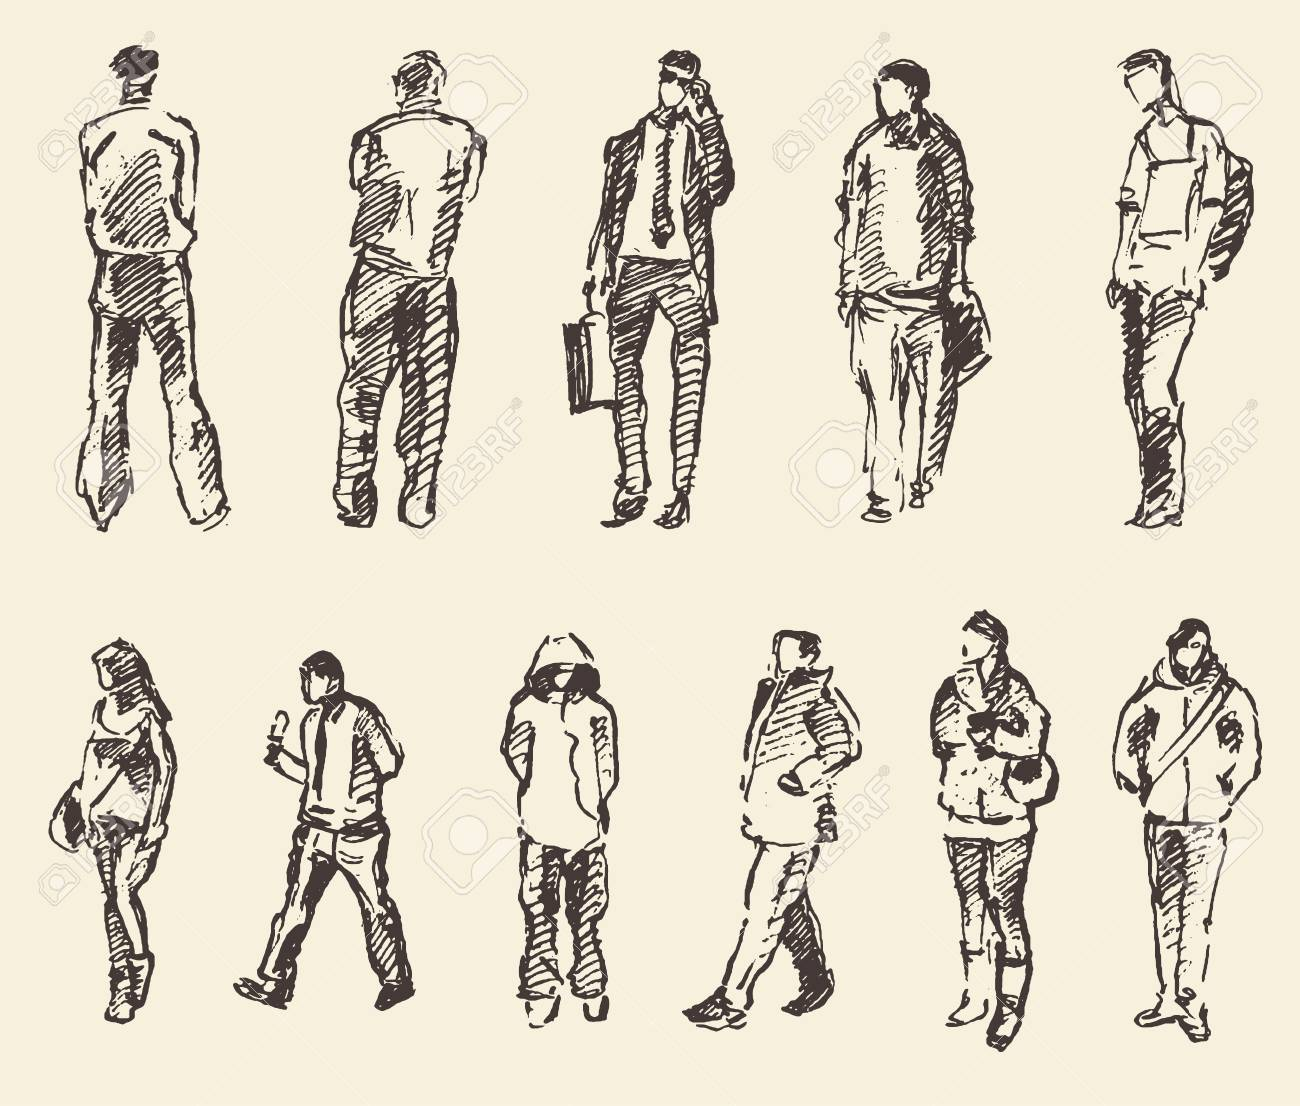 Sketch of people vector Illustration hand drawing draw - 58832449